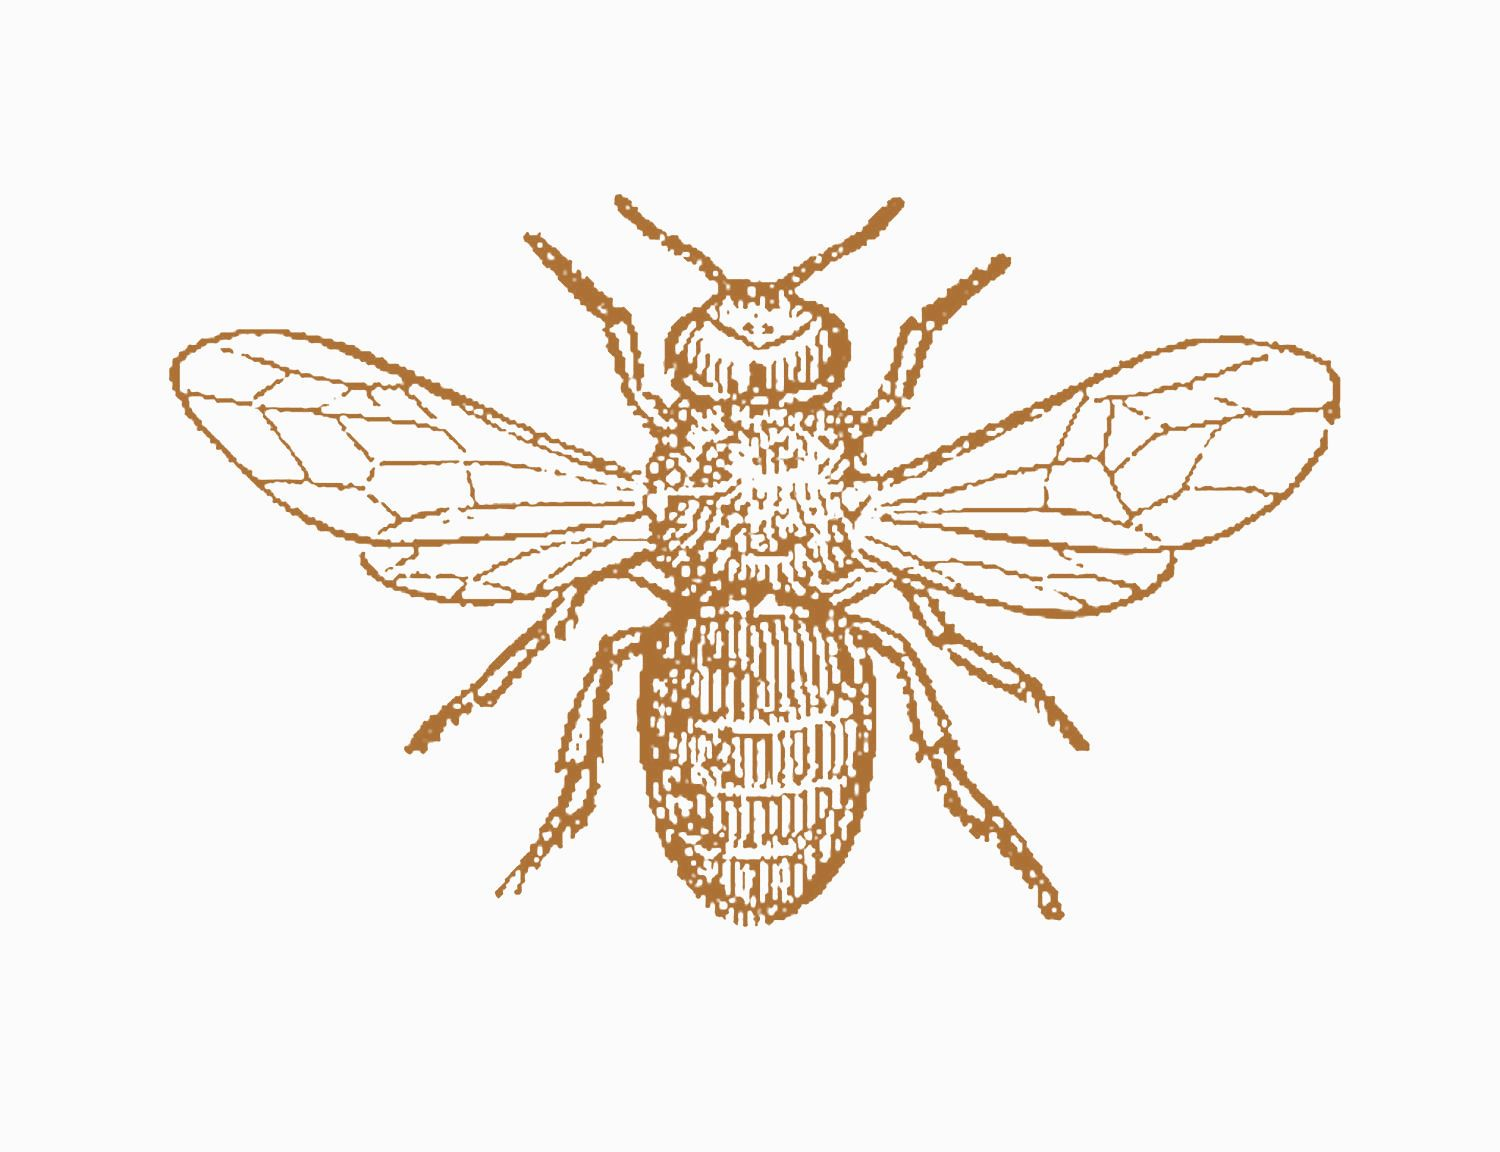 Bee clipart realistic png black and white download Vintage Bee Clip Art | Antique Images: Insect Clip Art: Black and ... png black and white download